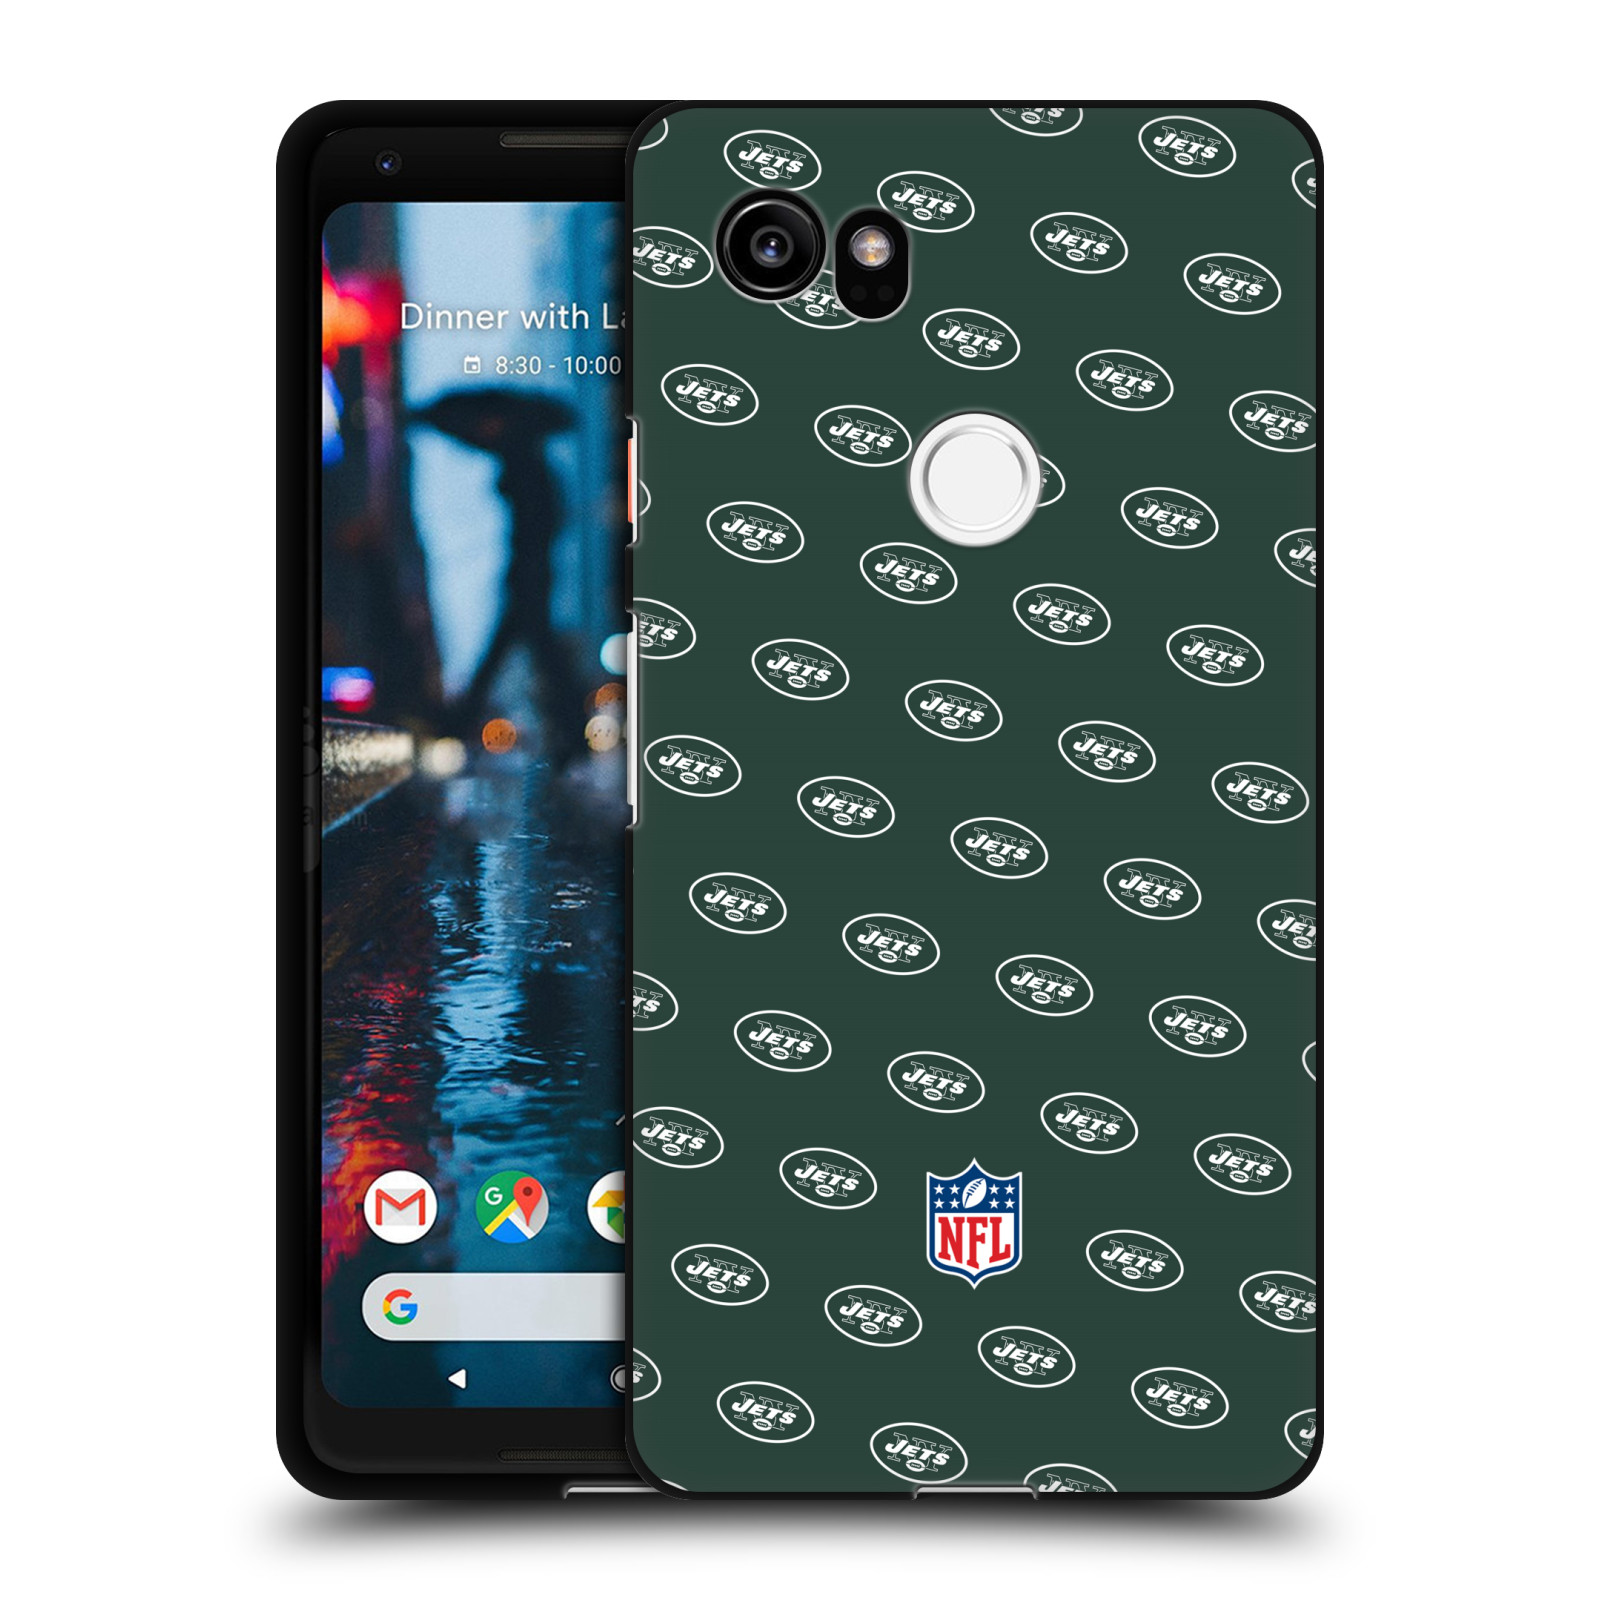 OFFICIEL-NFL-2017-18-NEW-YORK-JETS-LOGO-COQUE-EN-GEL-NOIR-POUR-GOOGLE-TELEPHONES